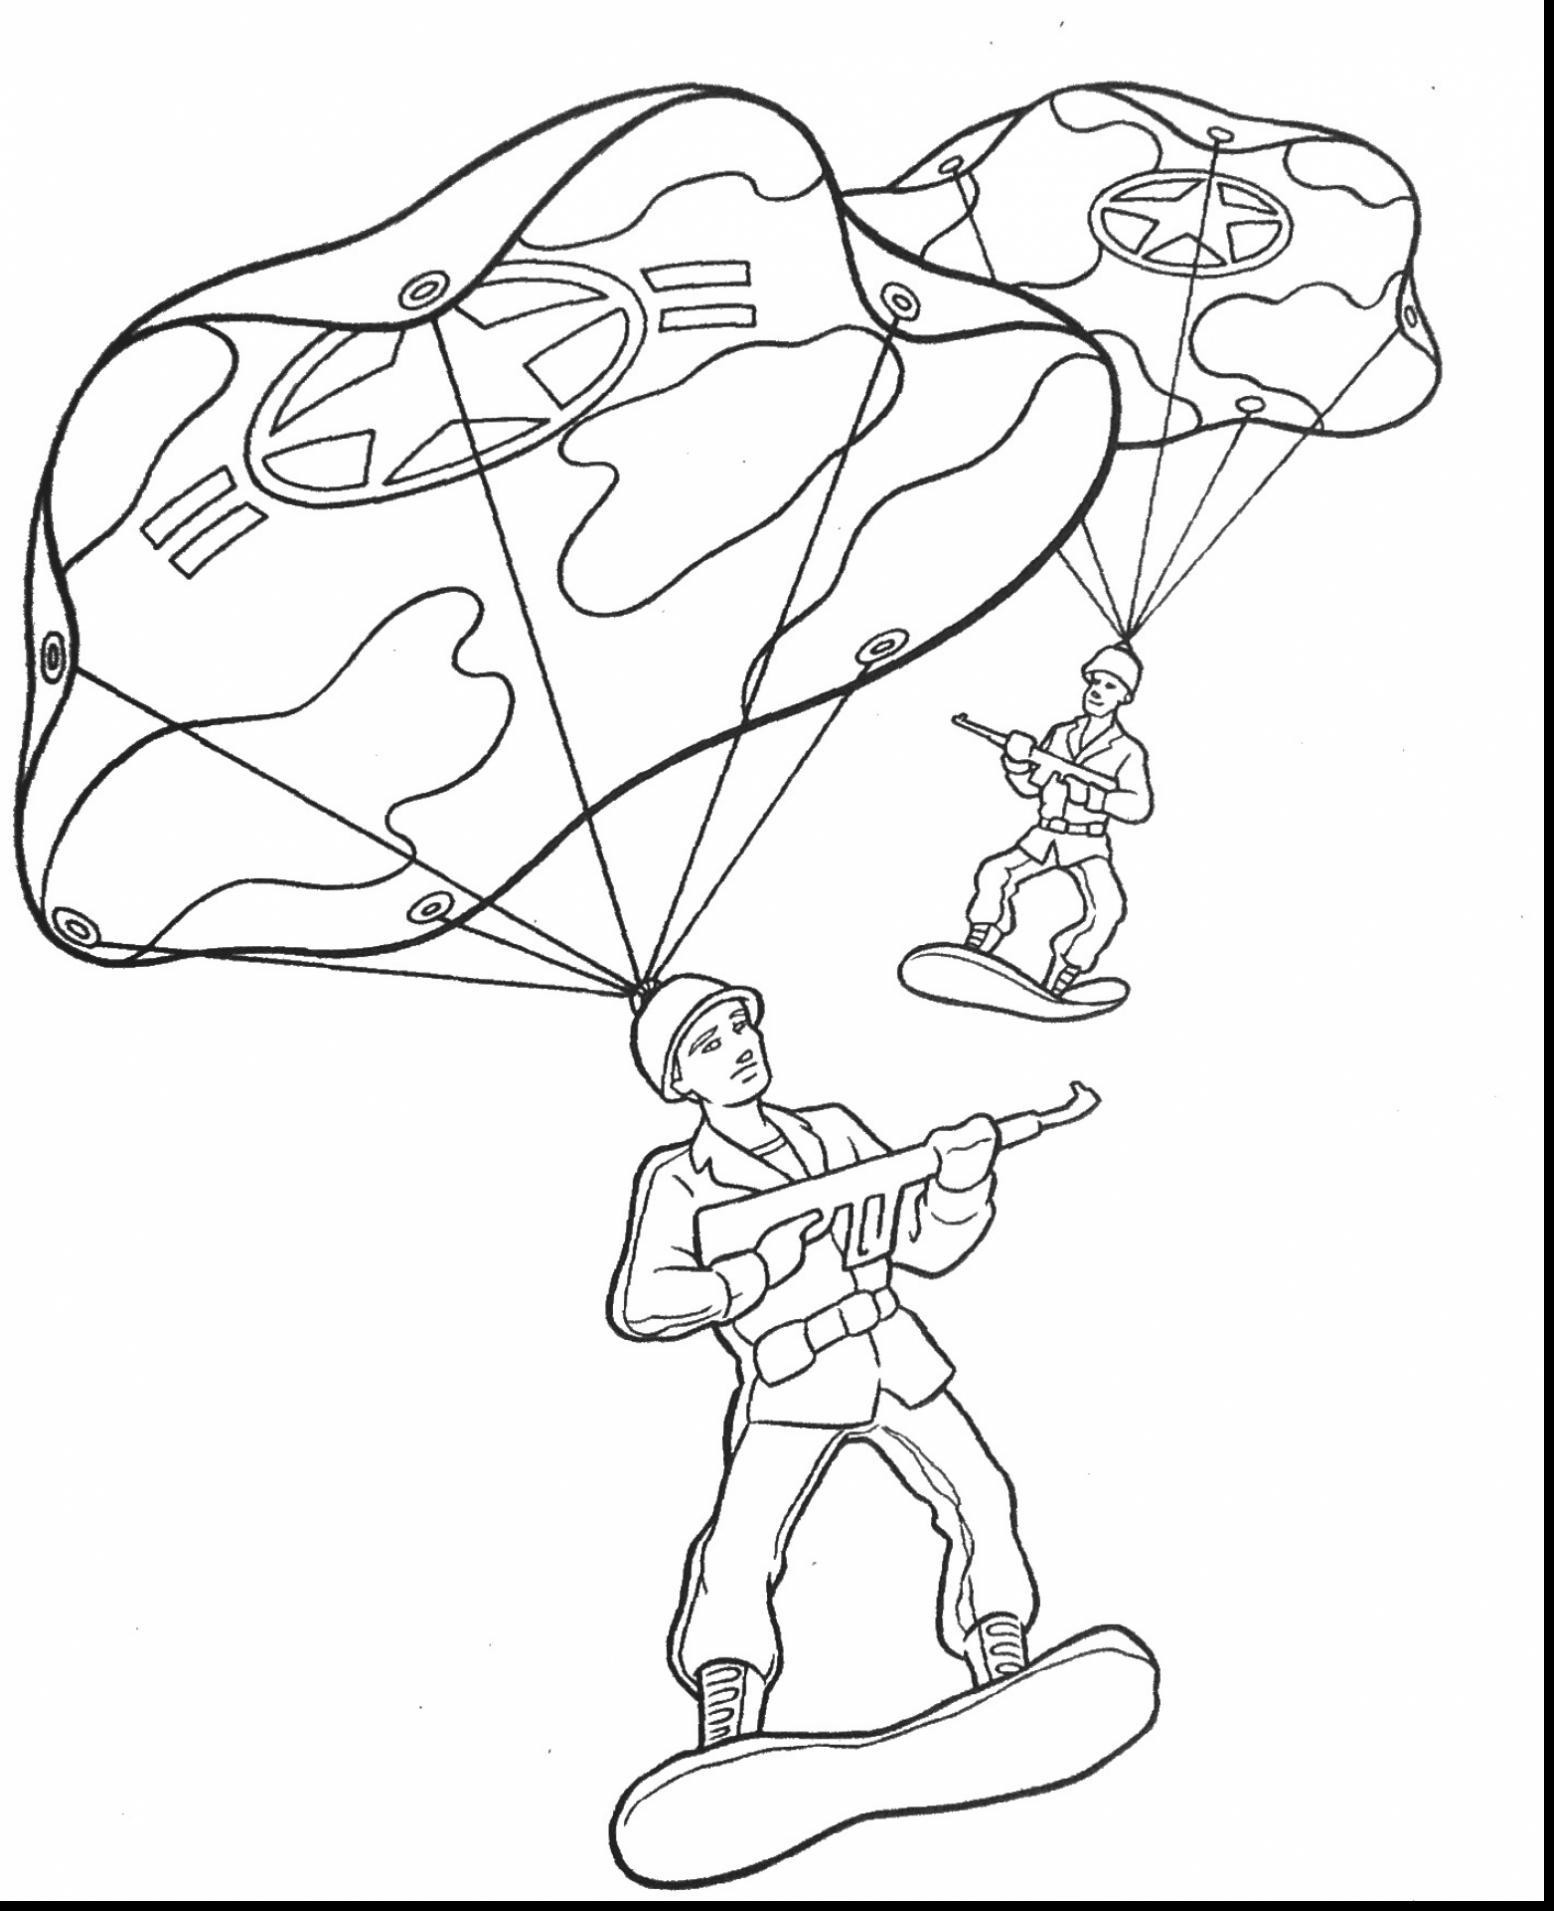 1554x1911 Coloring Pages For Army Fresh Green Army Guy Coloring Pages Valid